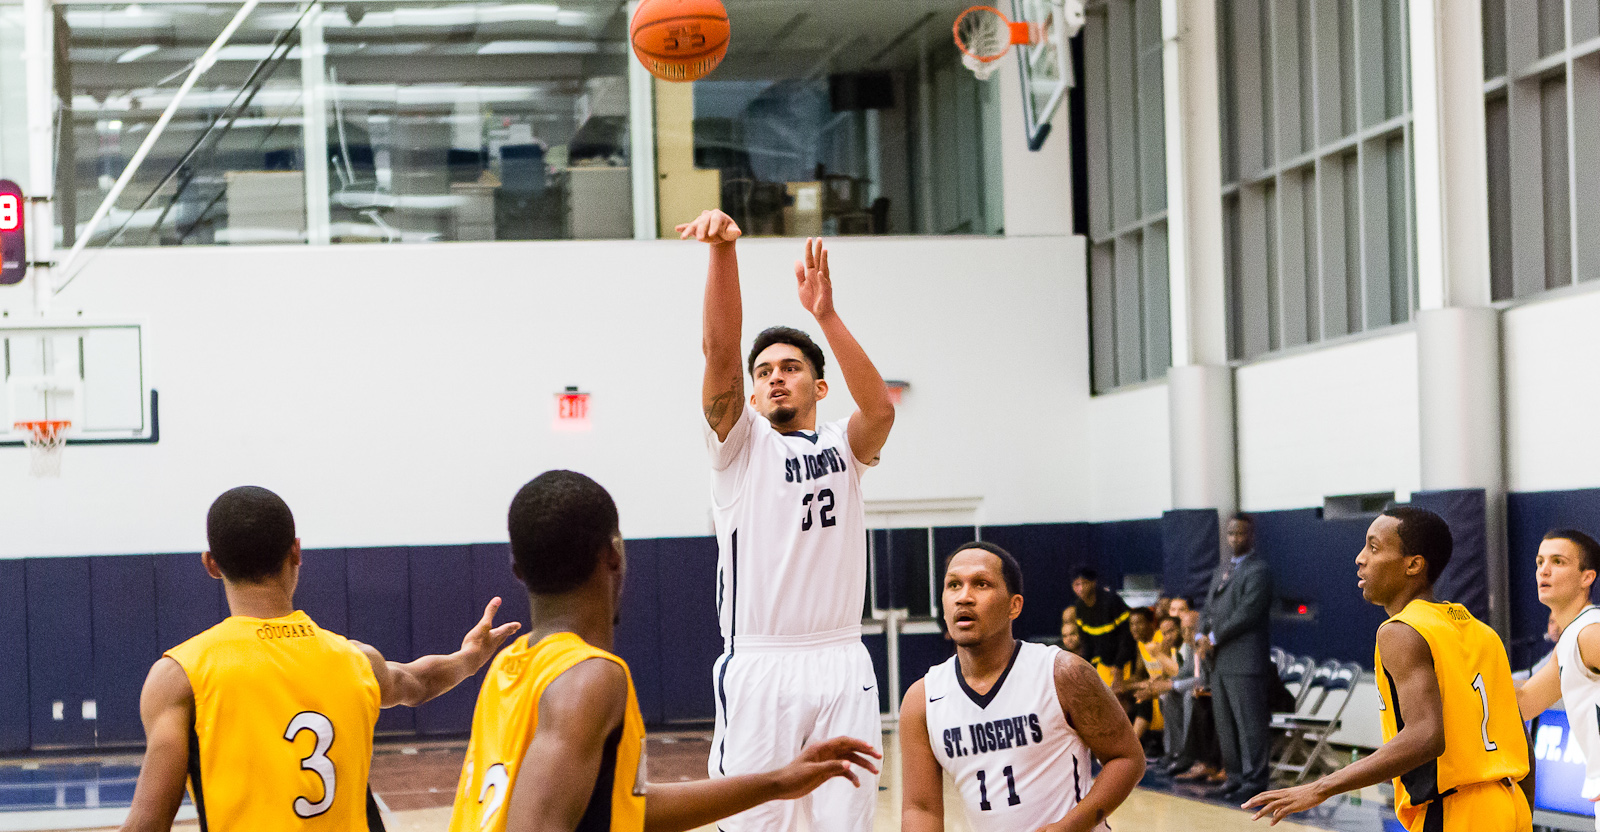 Men's Basketball Rains Down 13 Treys to Score Big Win at Home Over Hunter